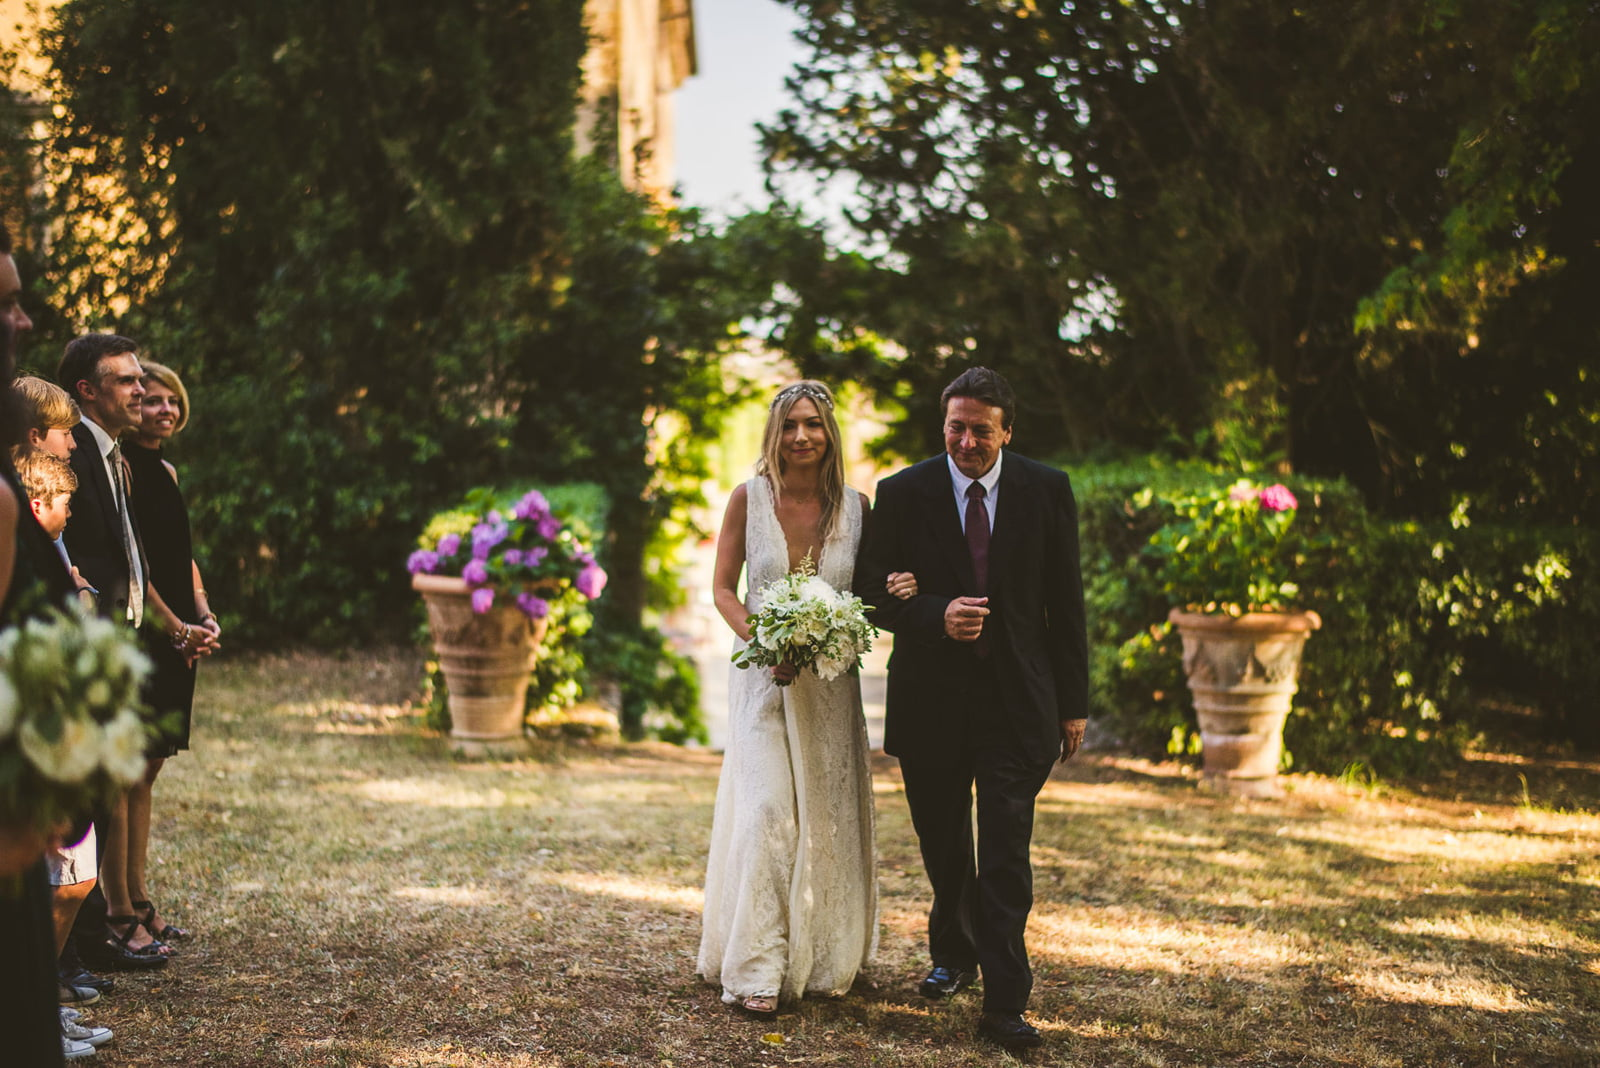 A+L Wedding at Montechiaro, Siena by Federico Pannacci 48